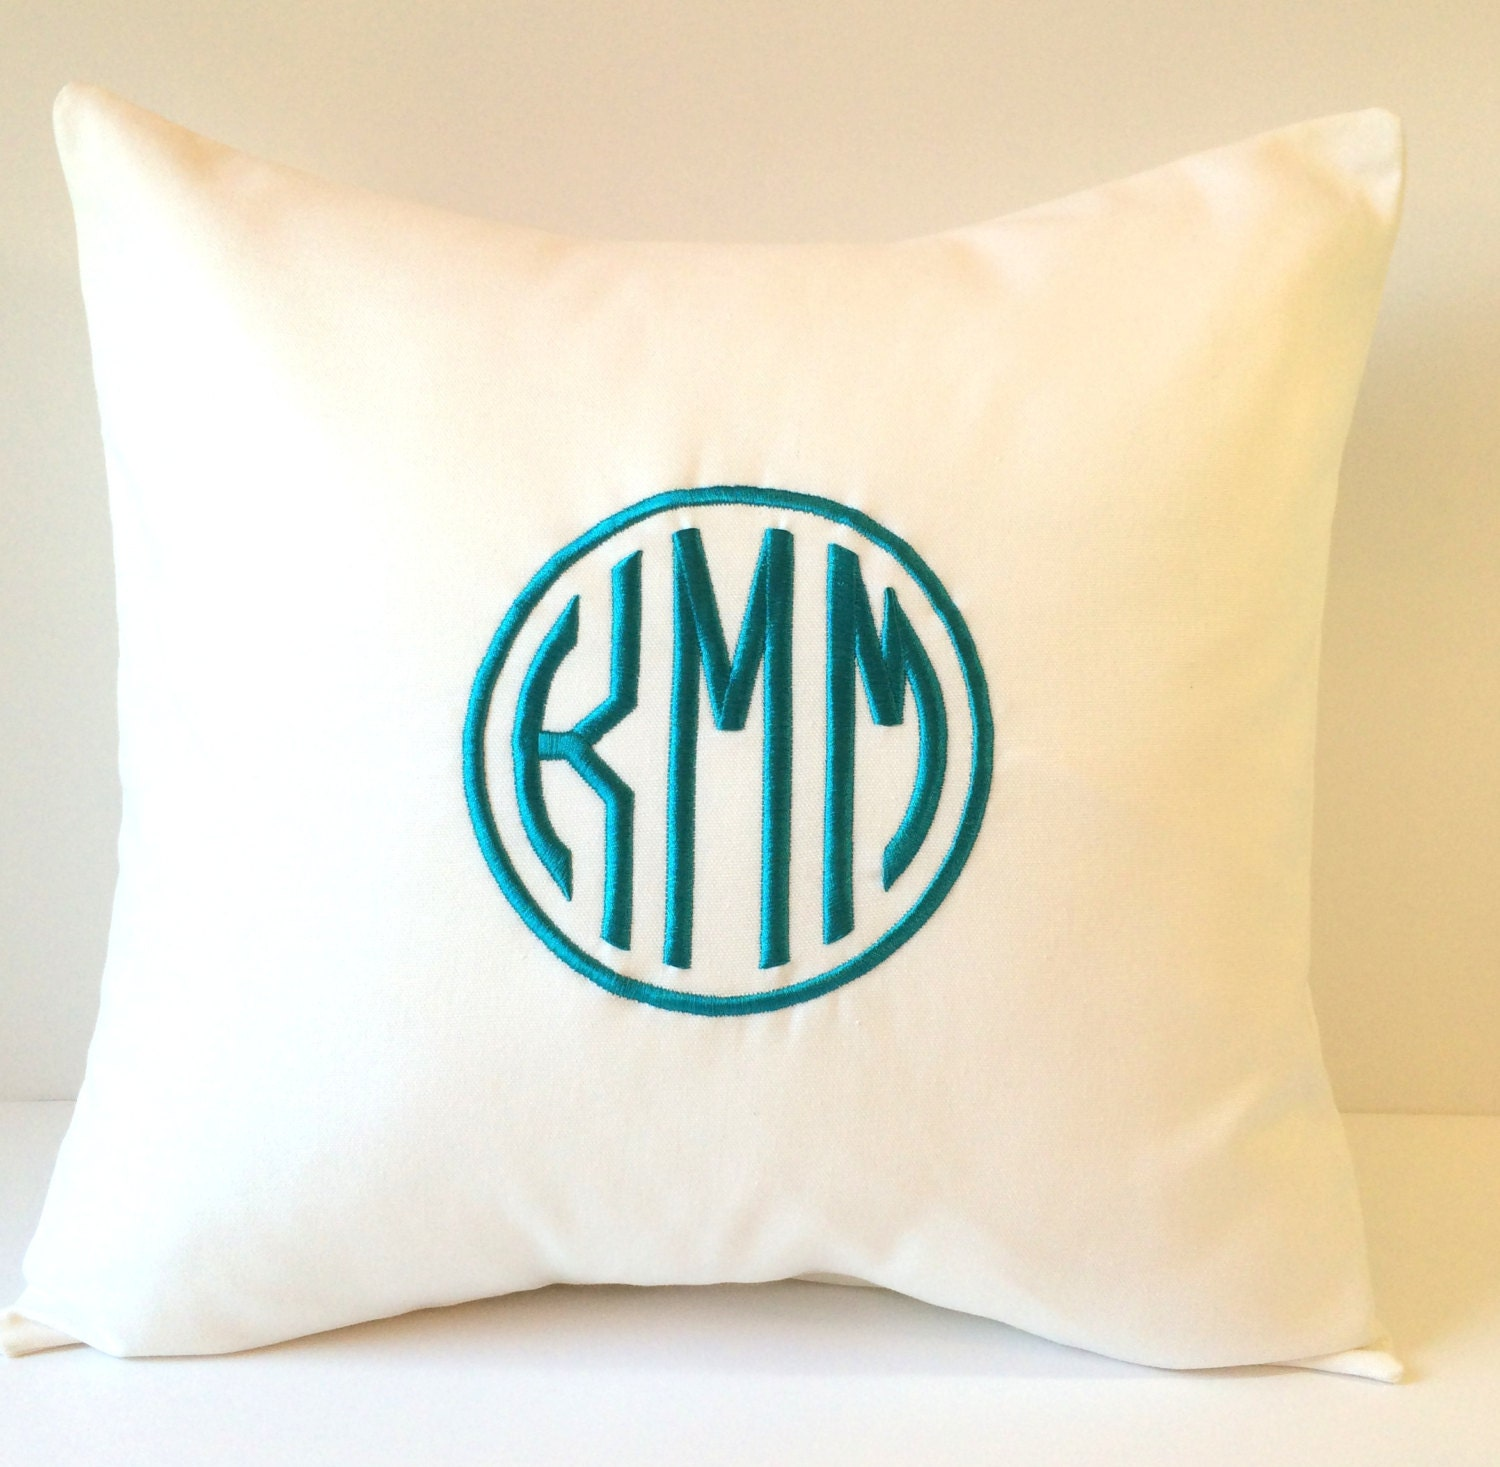 Decorative Monogram Pillow : CIRCLE MONOGRAM Pillow Cover. 18 x 18 Decorative by SewGracious